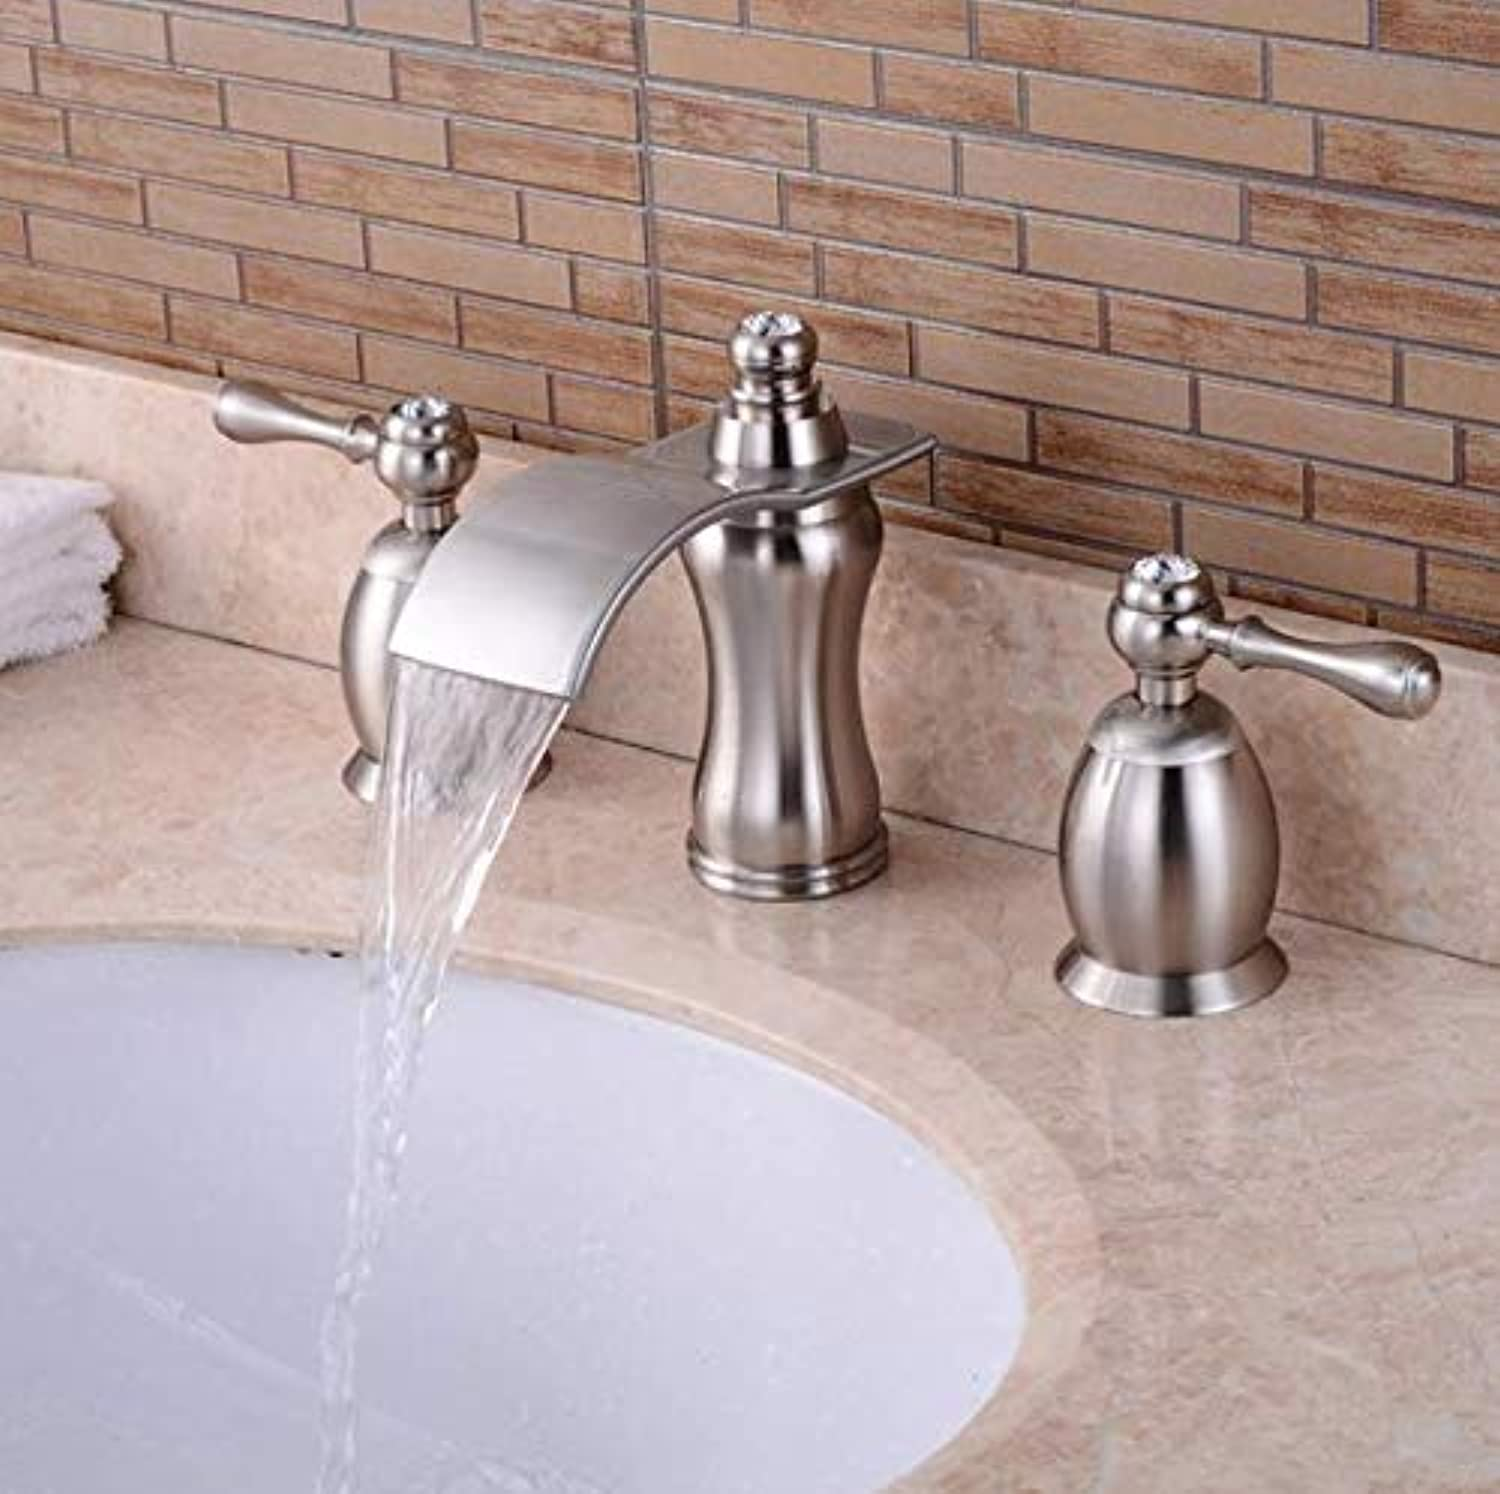 Decorry Bad Basin Sink Faucets Widespread Water Mixer Nickel Brushed Dual Handle Three Hole Waterfall Faucet, B